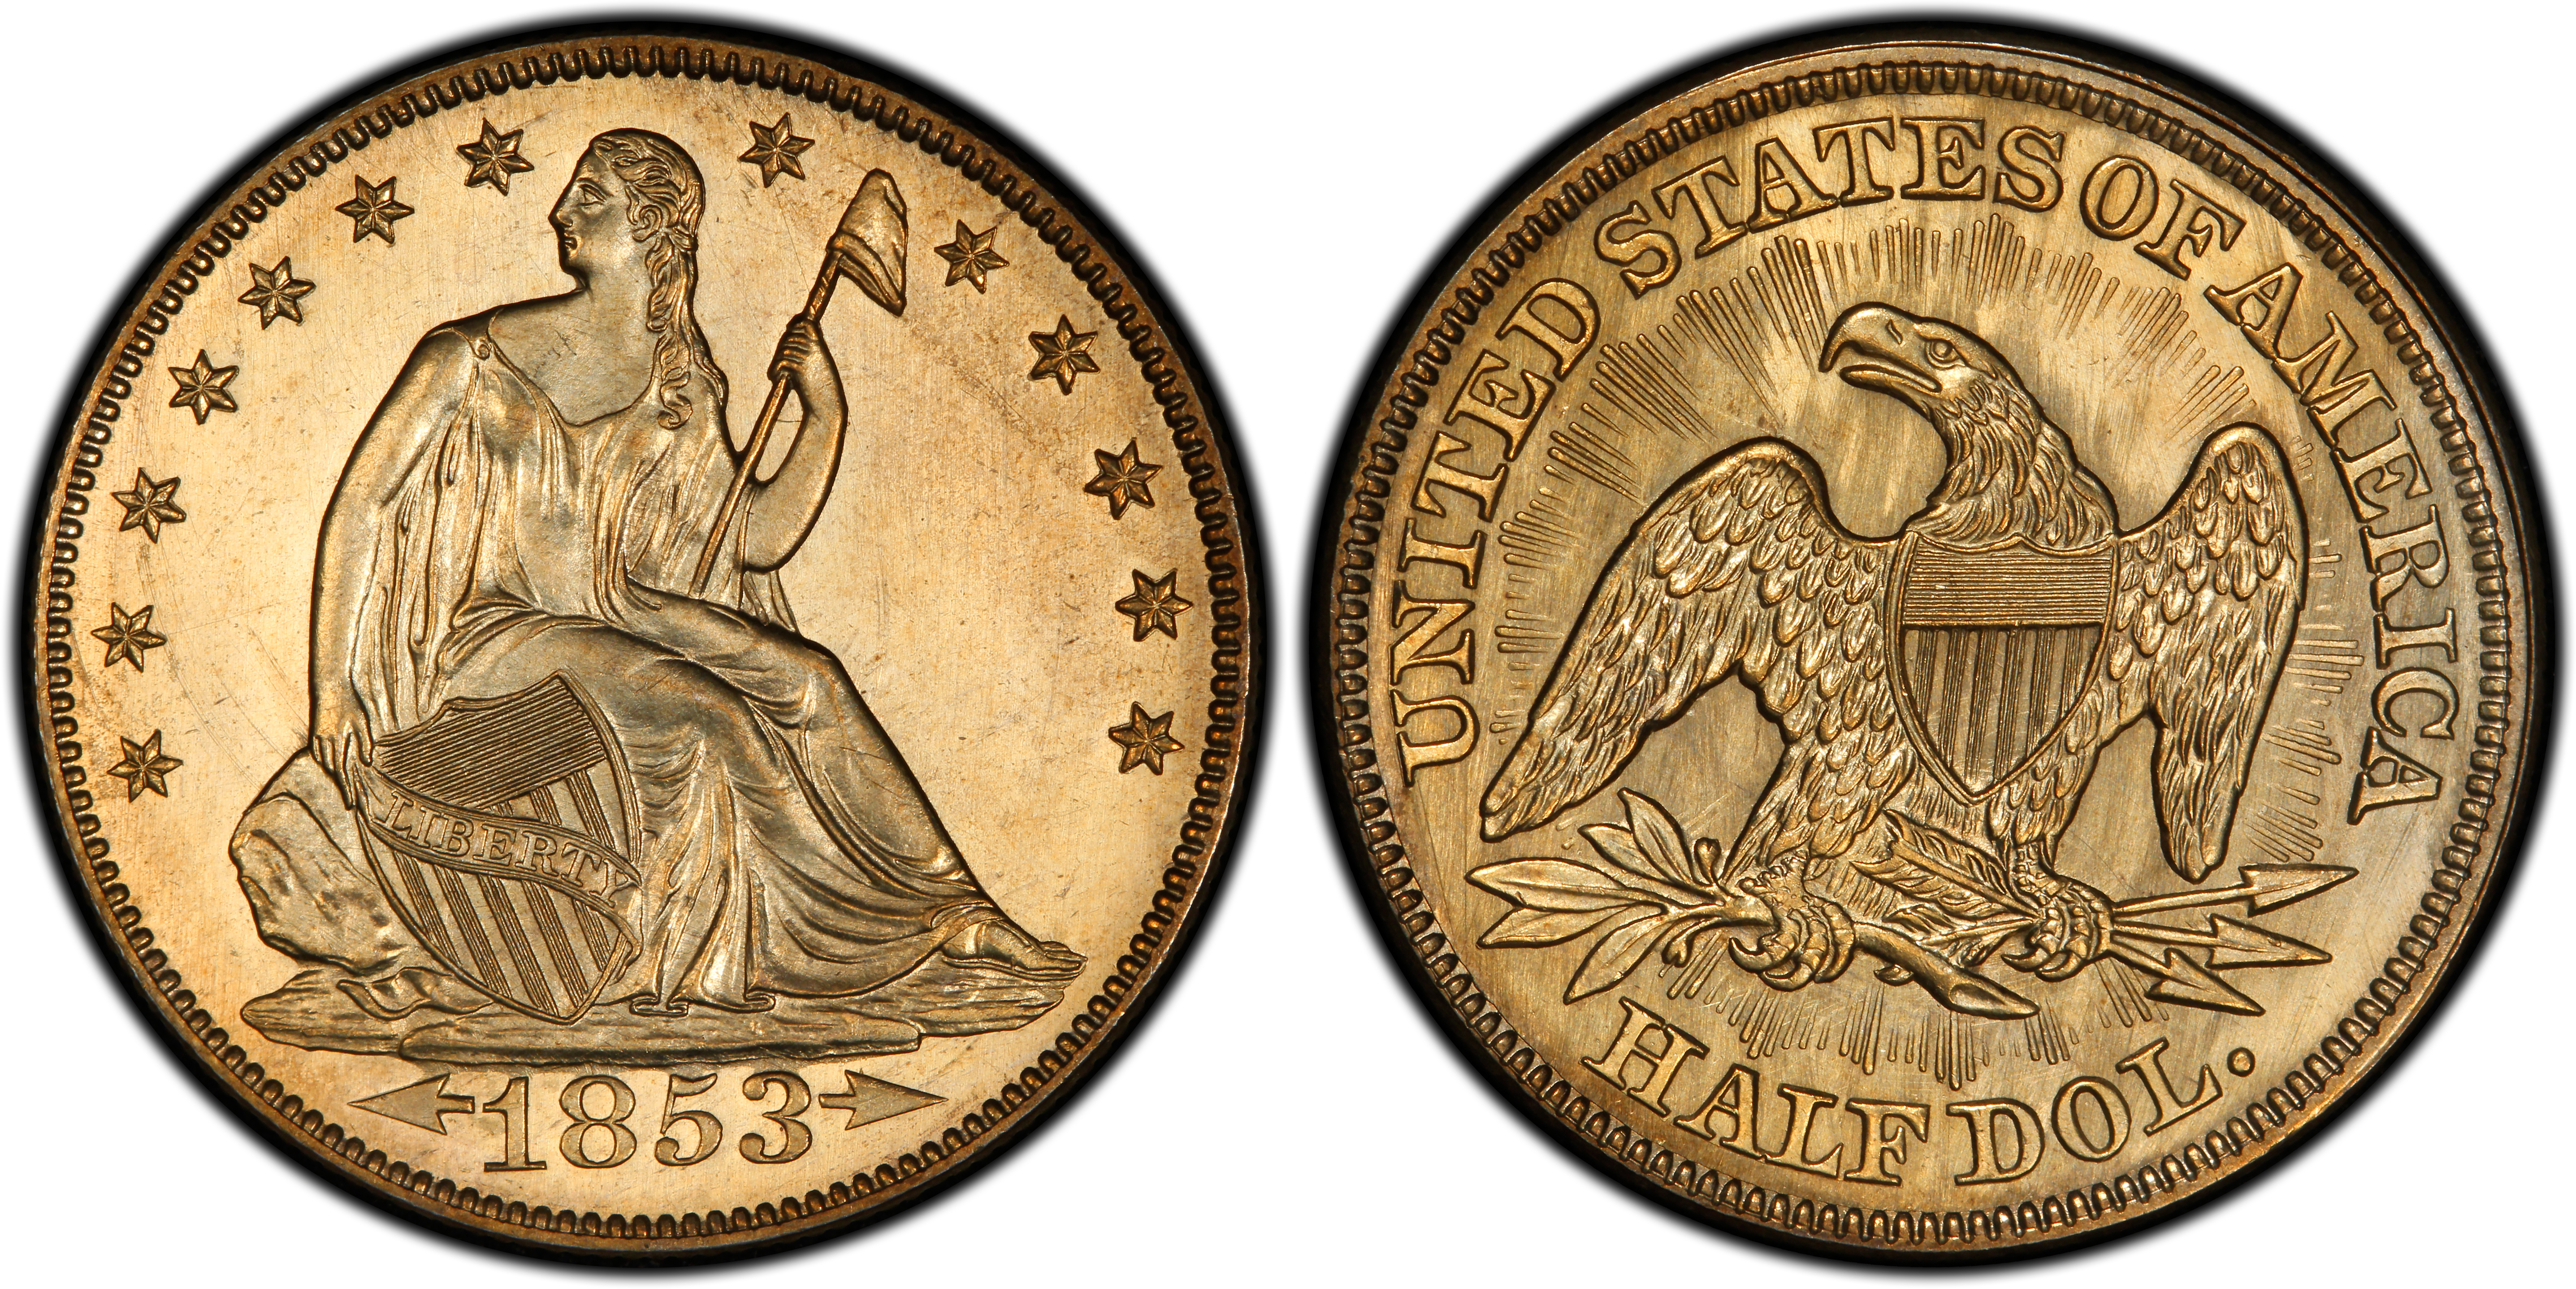 Paragon Numismatics - Half Dollar Coin - 1853 Arrows and Rays Liberty Seated Half Dollar